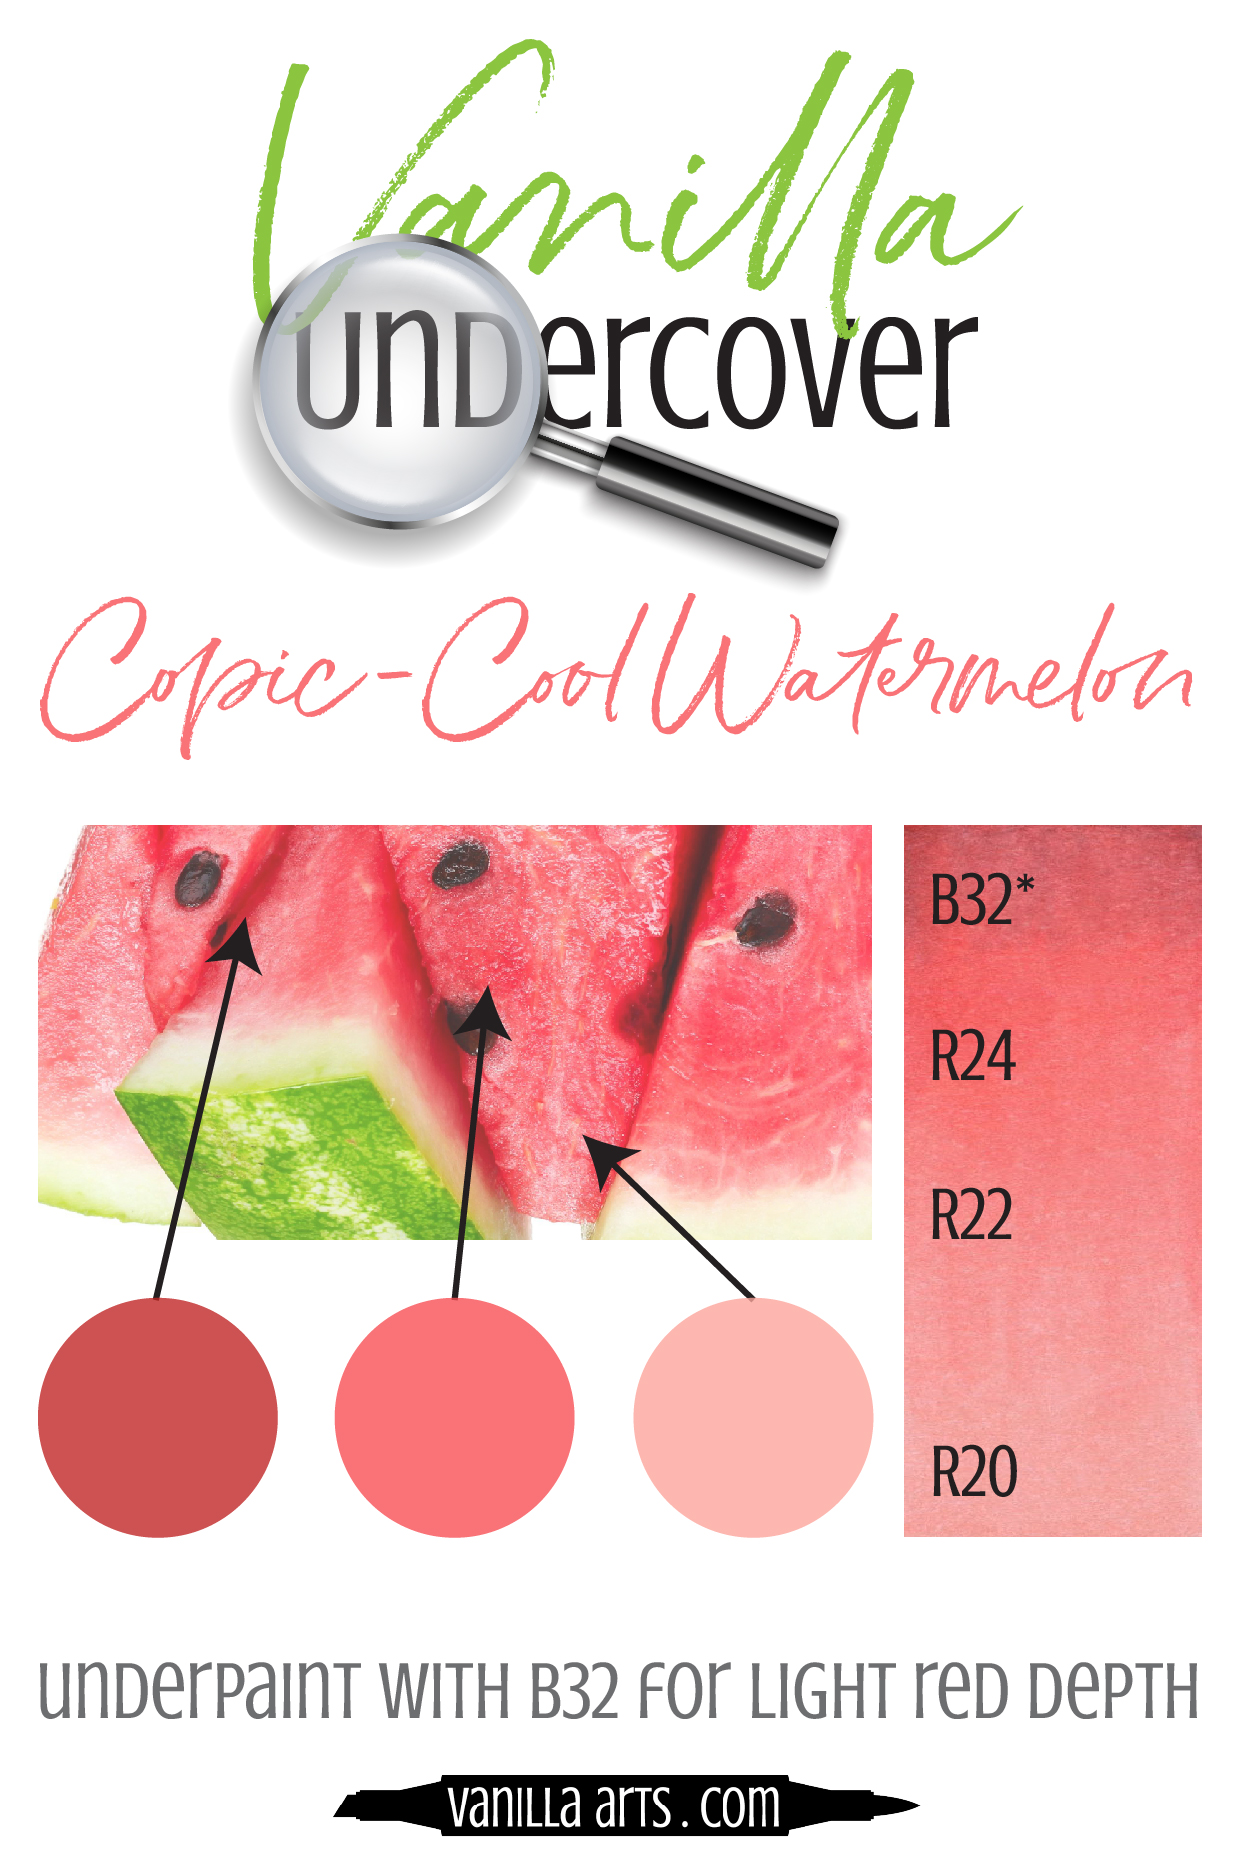 Add dimension and realism by underpainting with Copic Markers! Use B32 underneath your R's (Red) blending combination to capture the look of Cool Watermelon. |  VanillaArts.com  | #copicmarker #realisticcoloring #underpainting